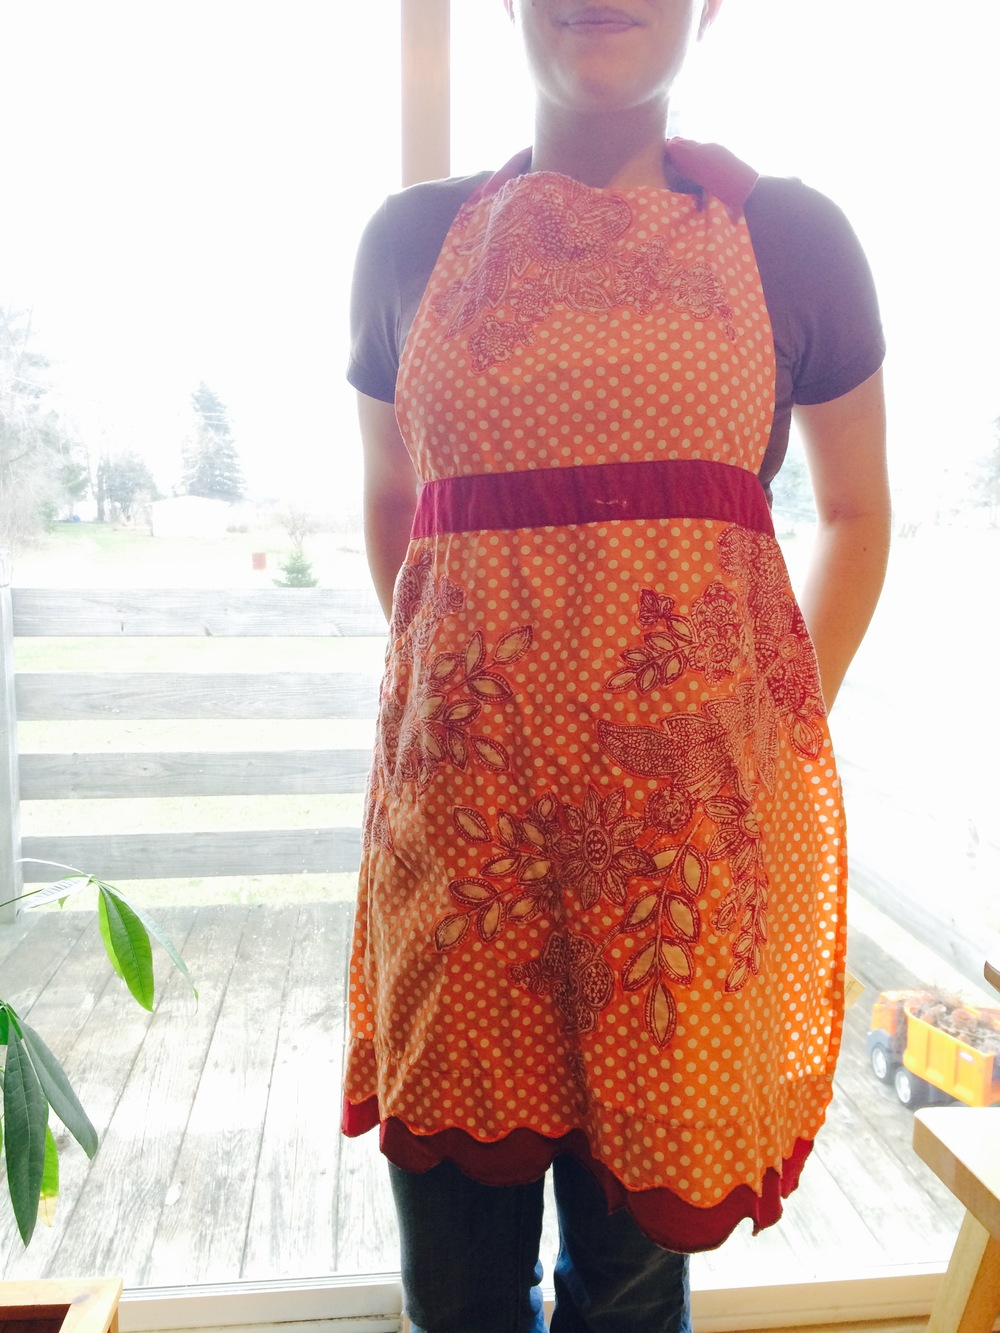 Aprons are highly recommended.